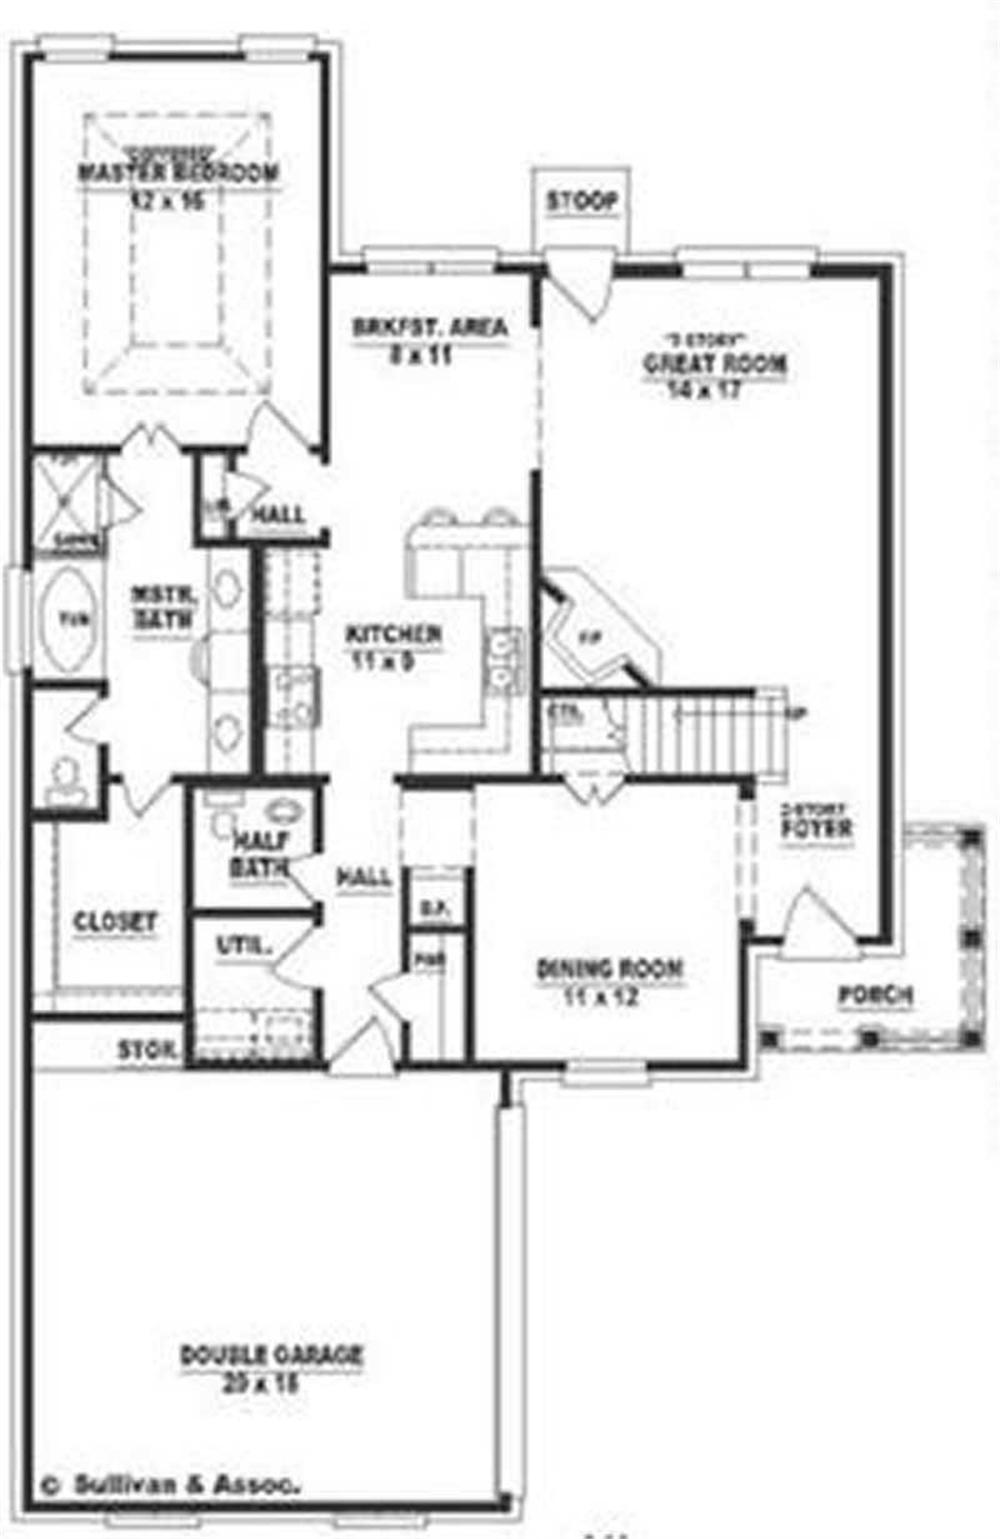 Large Images For House Plan 170 3357